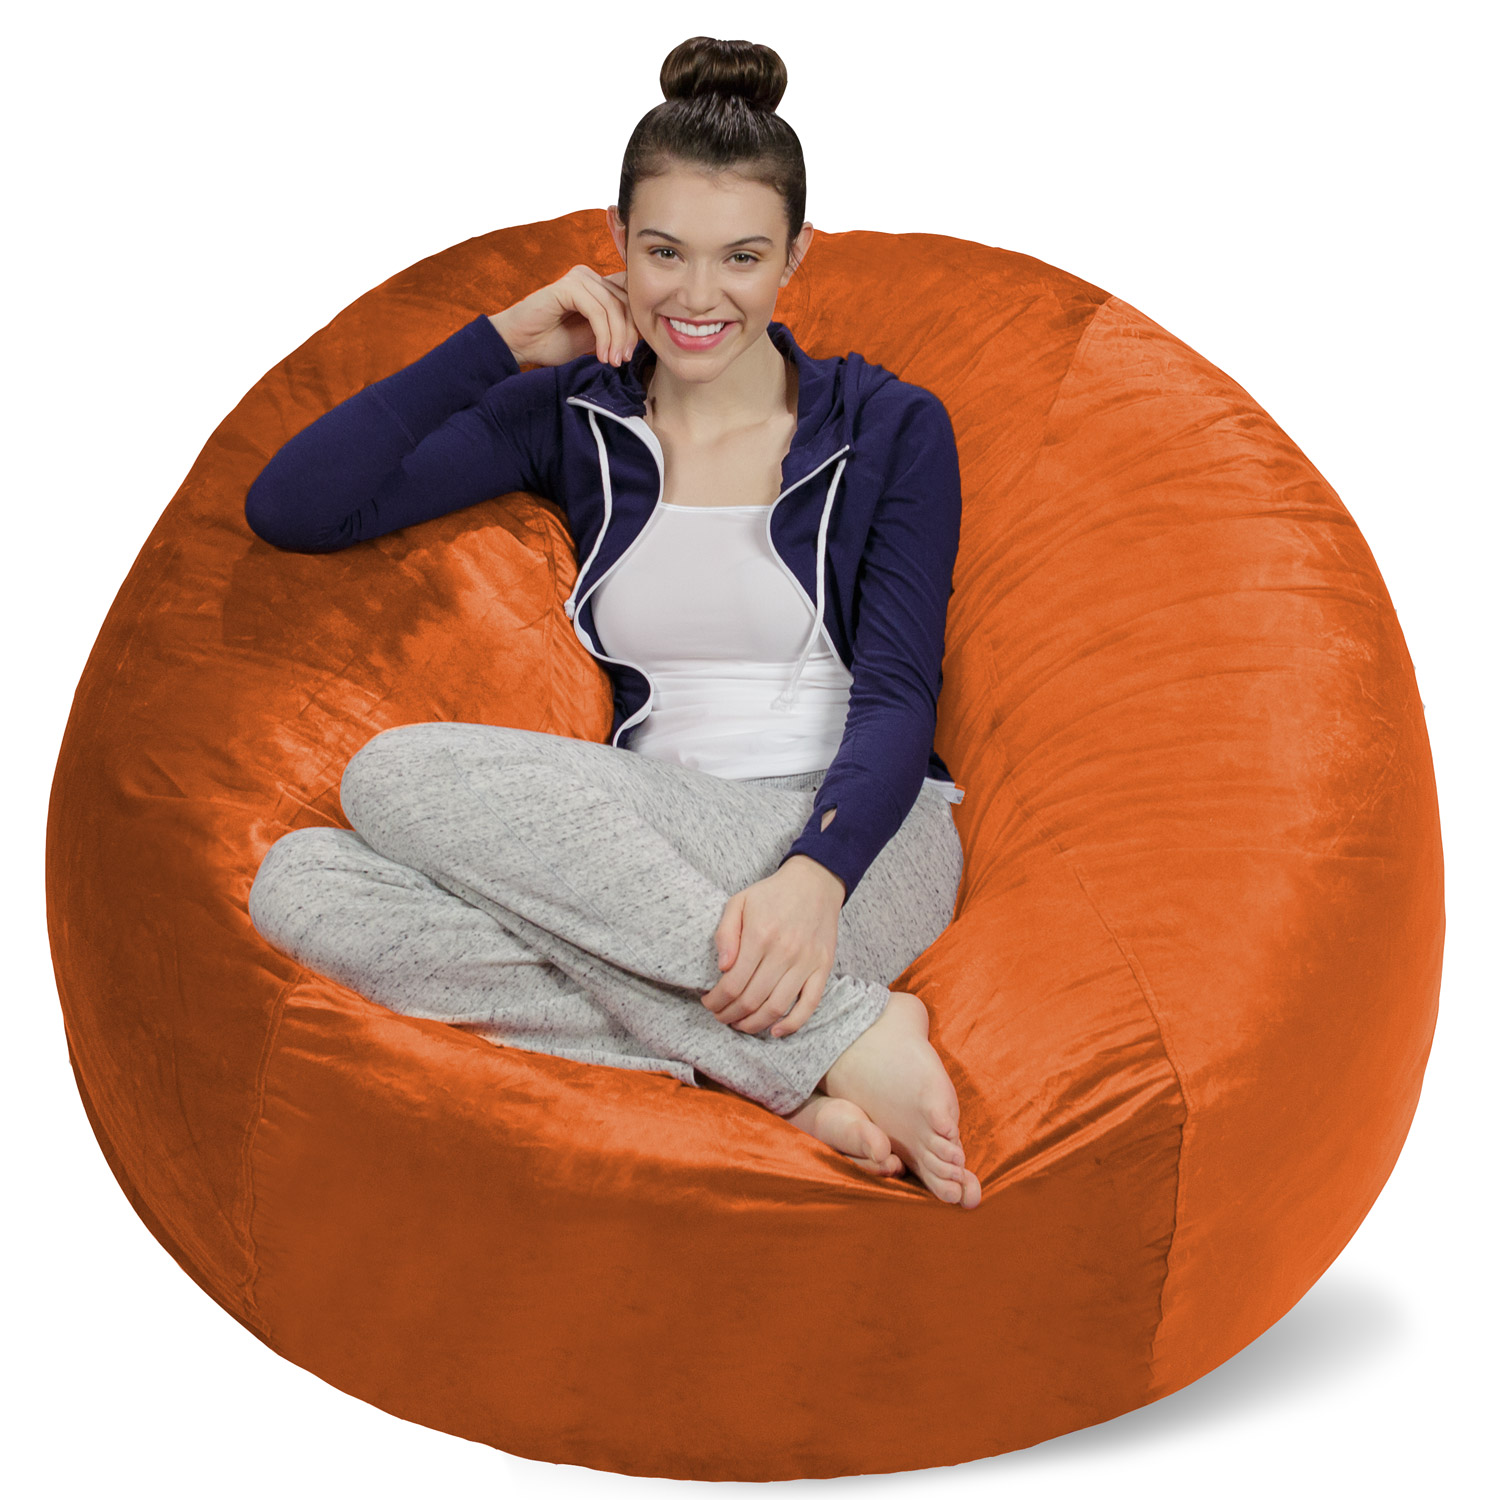 Sofa Sack Memory Foam Bean Bag Chair - 5 ft